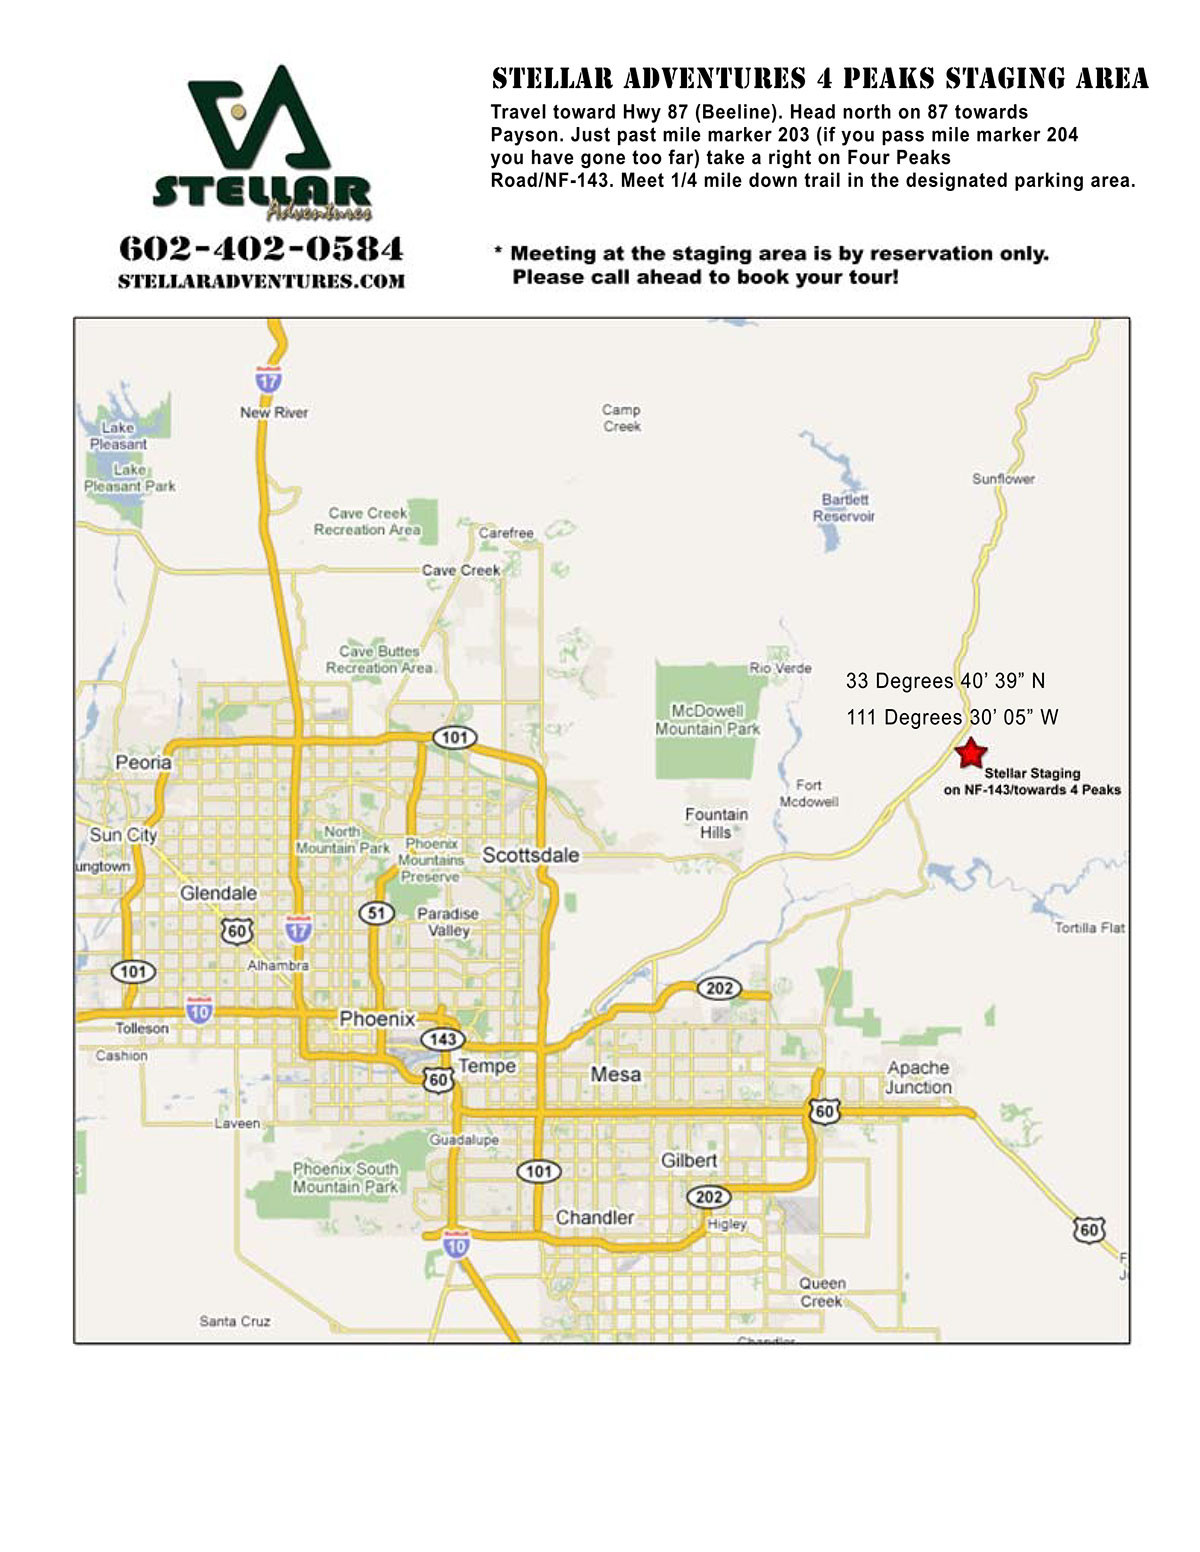 4 Peaks Staging Area Map Directions for Stellar Adventures Web